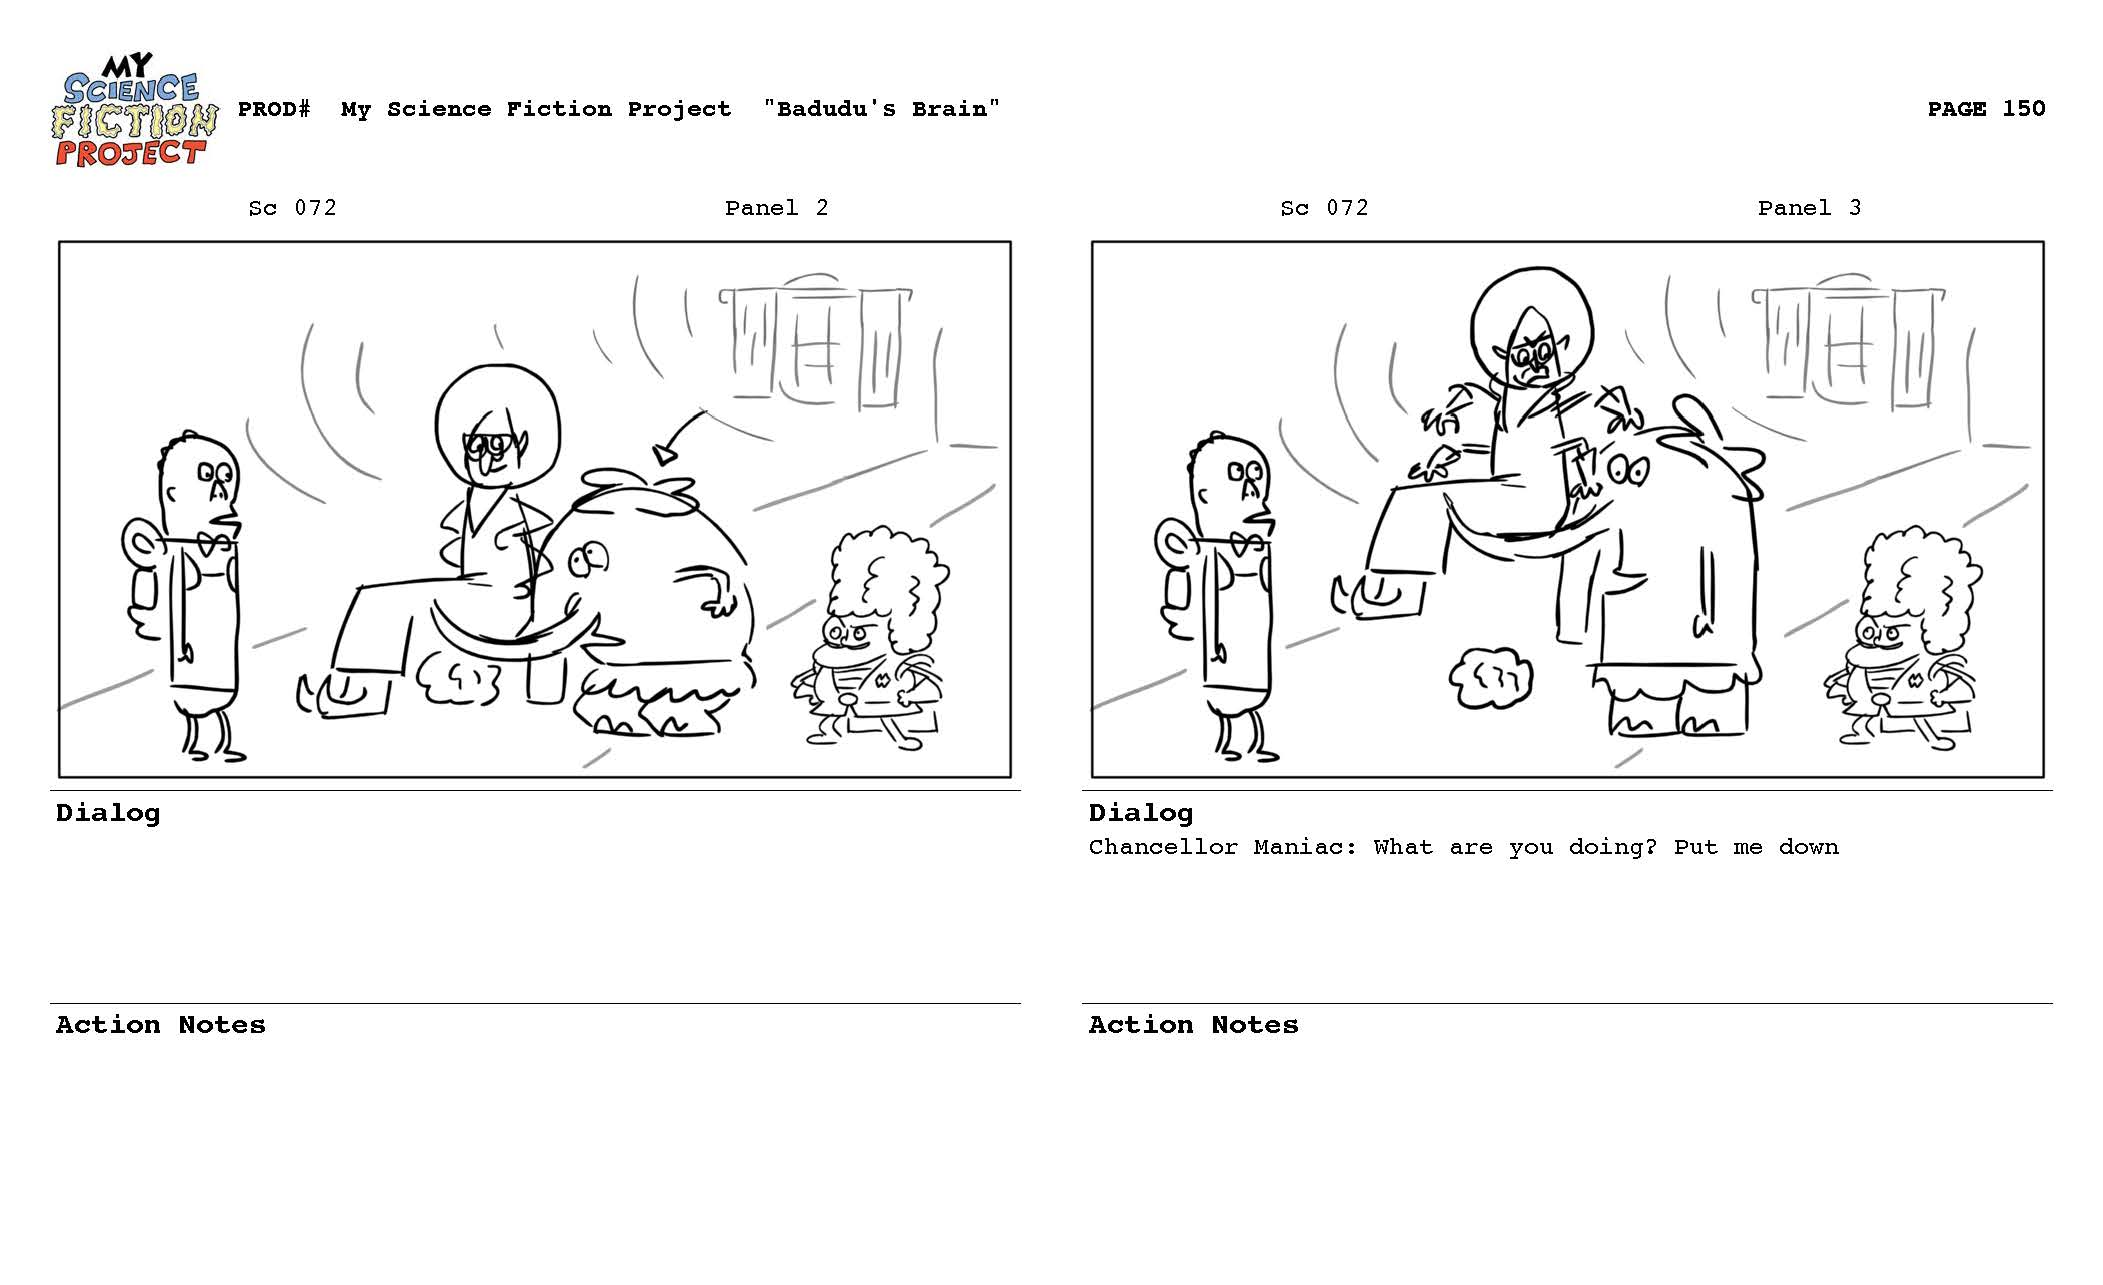 My_Science_Fiction_Project_SB_083112_reduced_Page_150.jpg